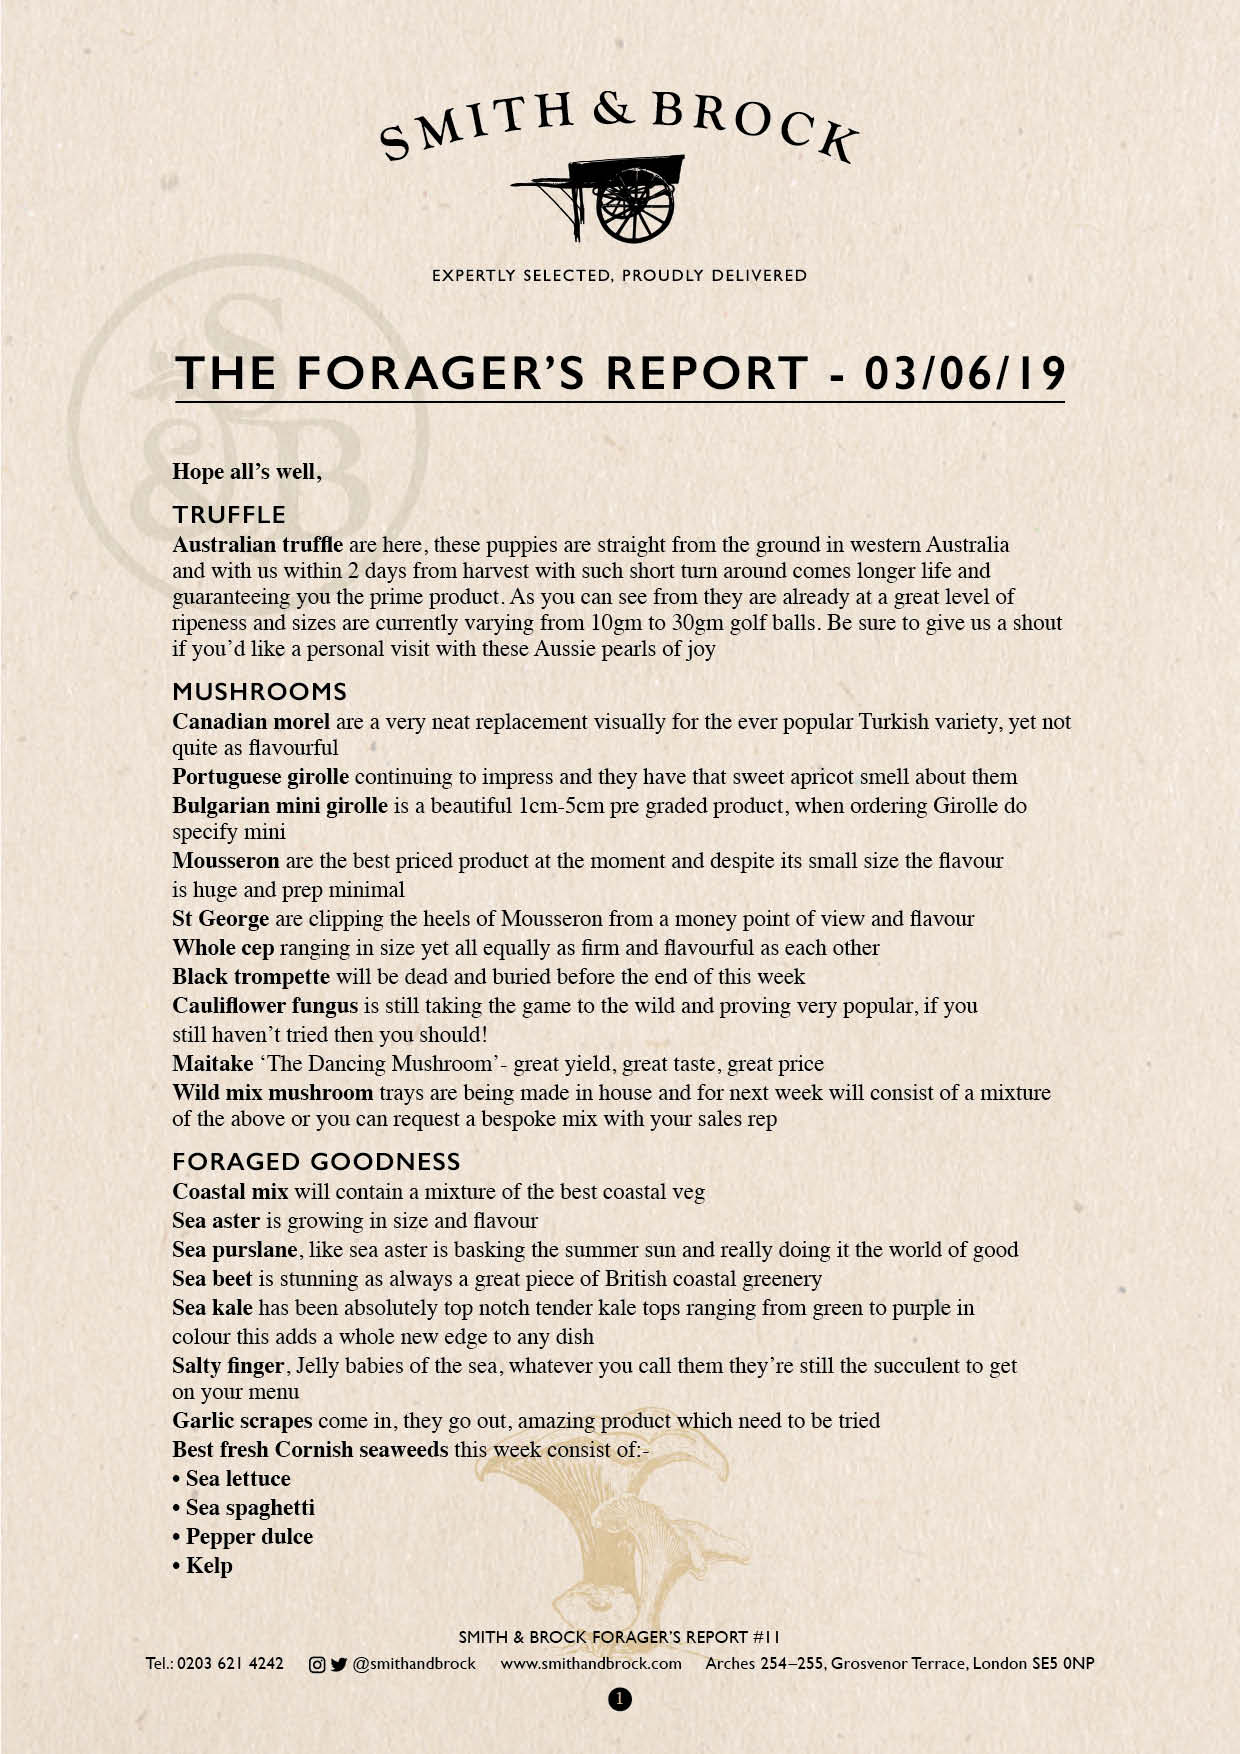 Smith&Brock Foraged Products Report 03 June 2019 11